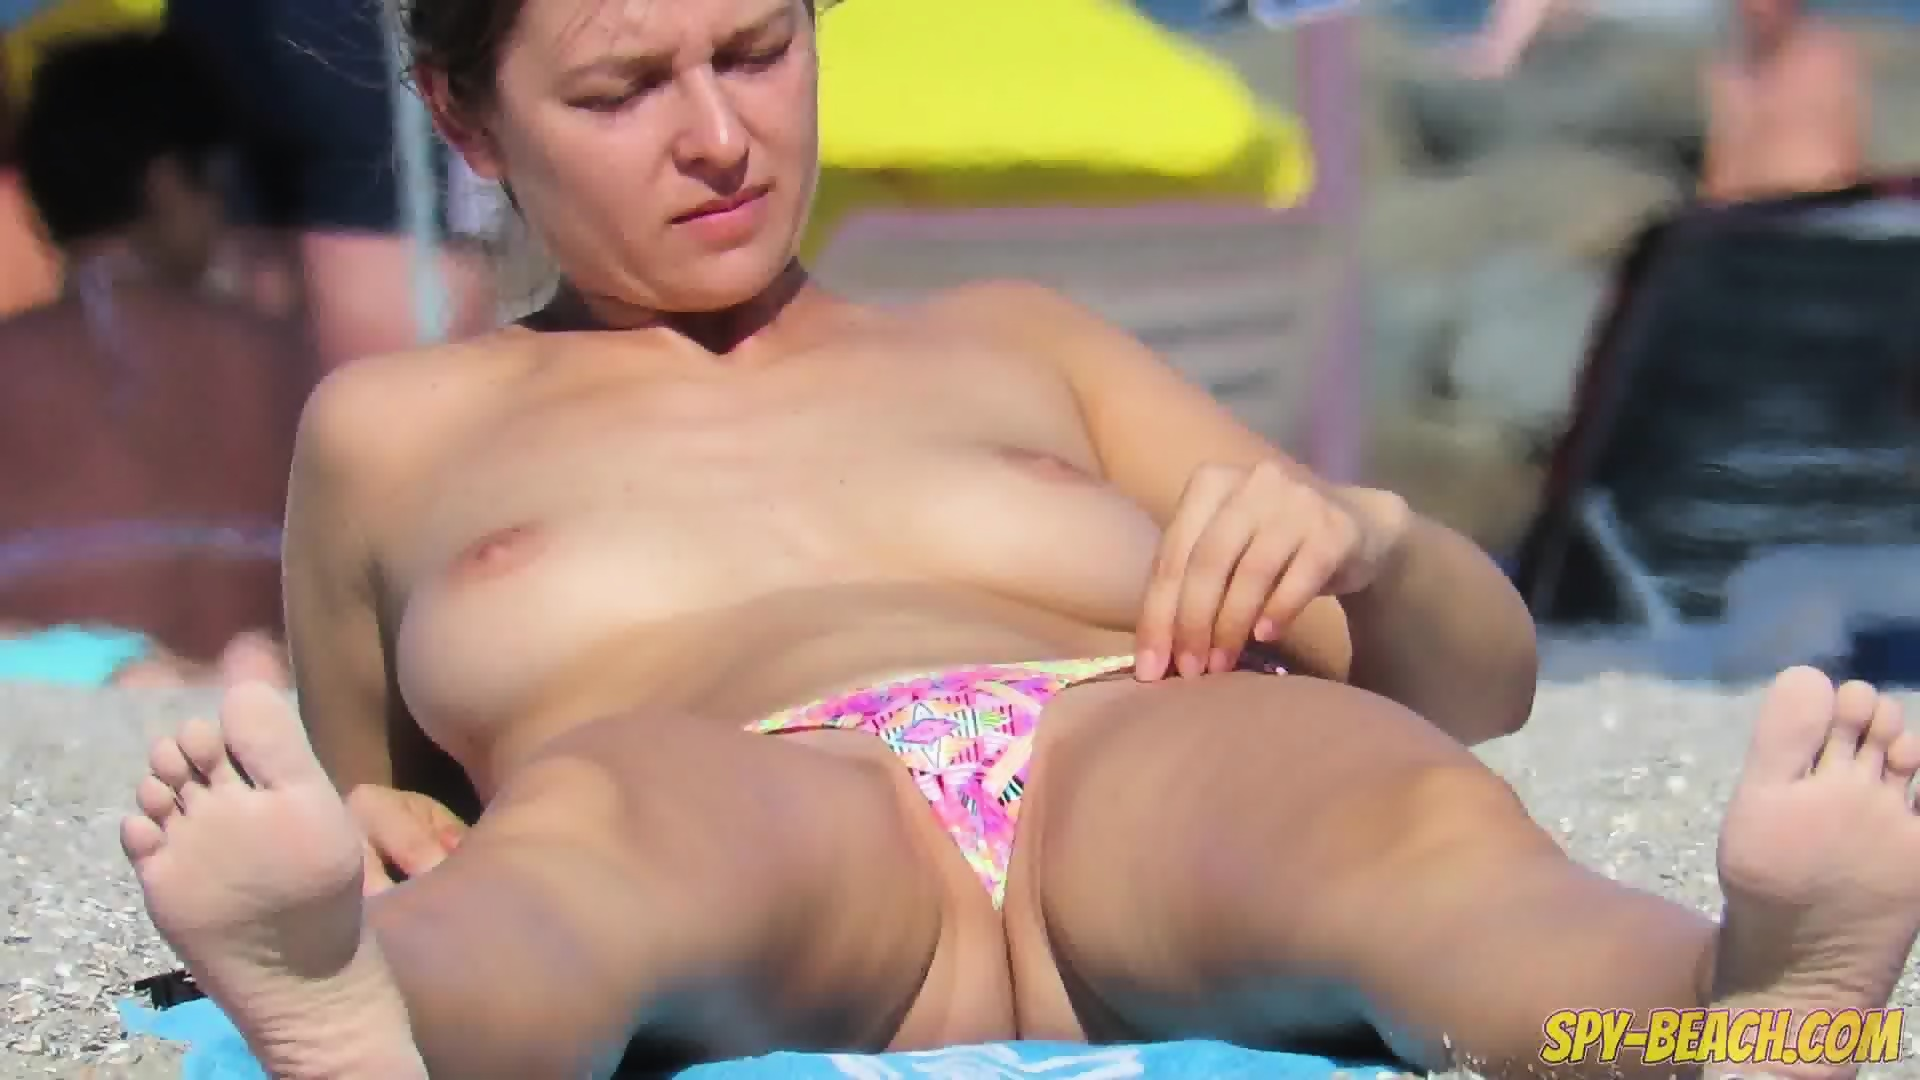 Candid sex pics hd have hit